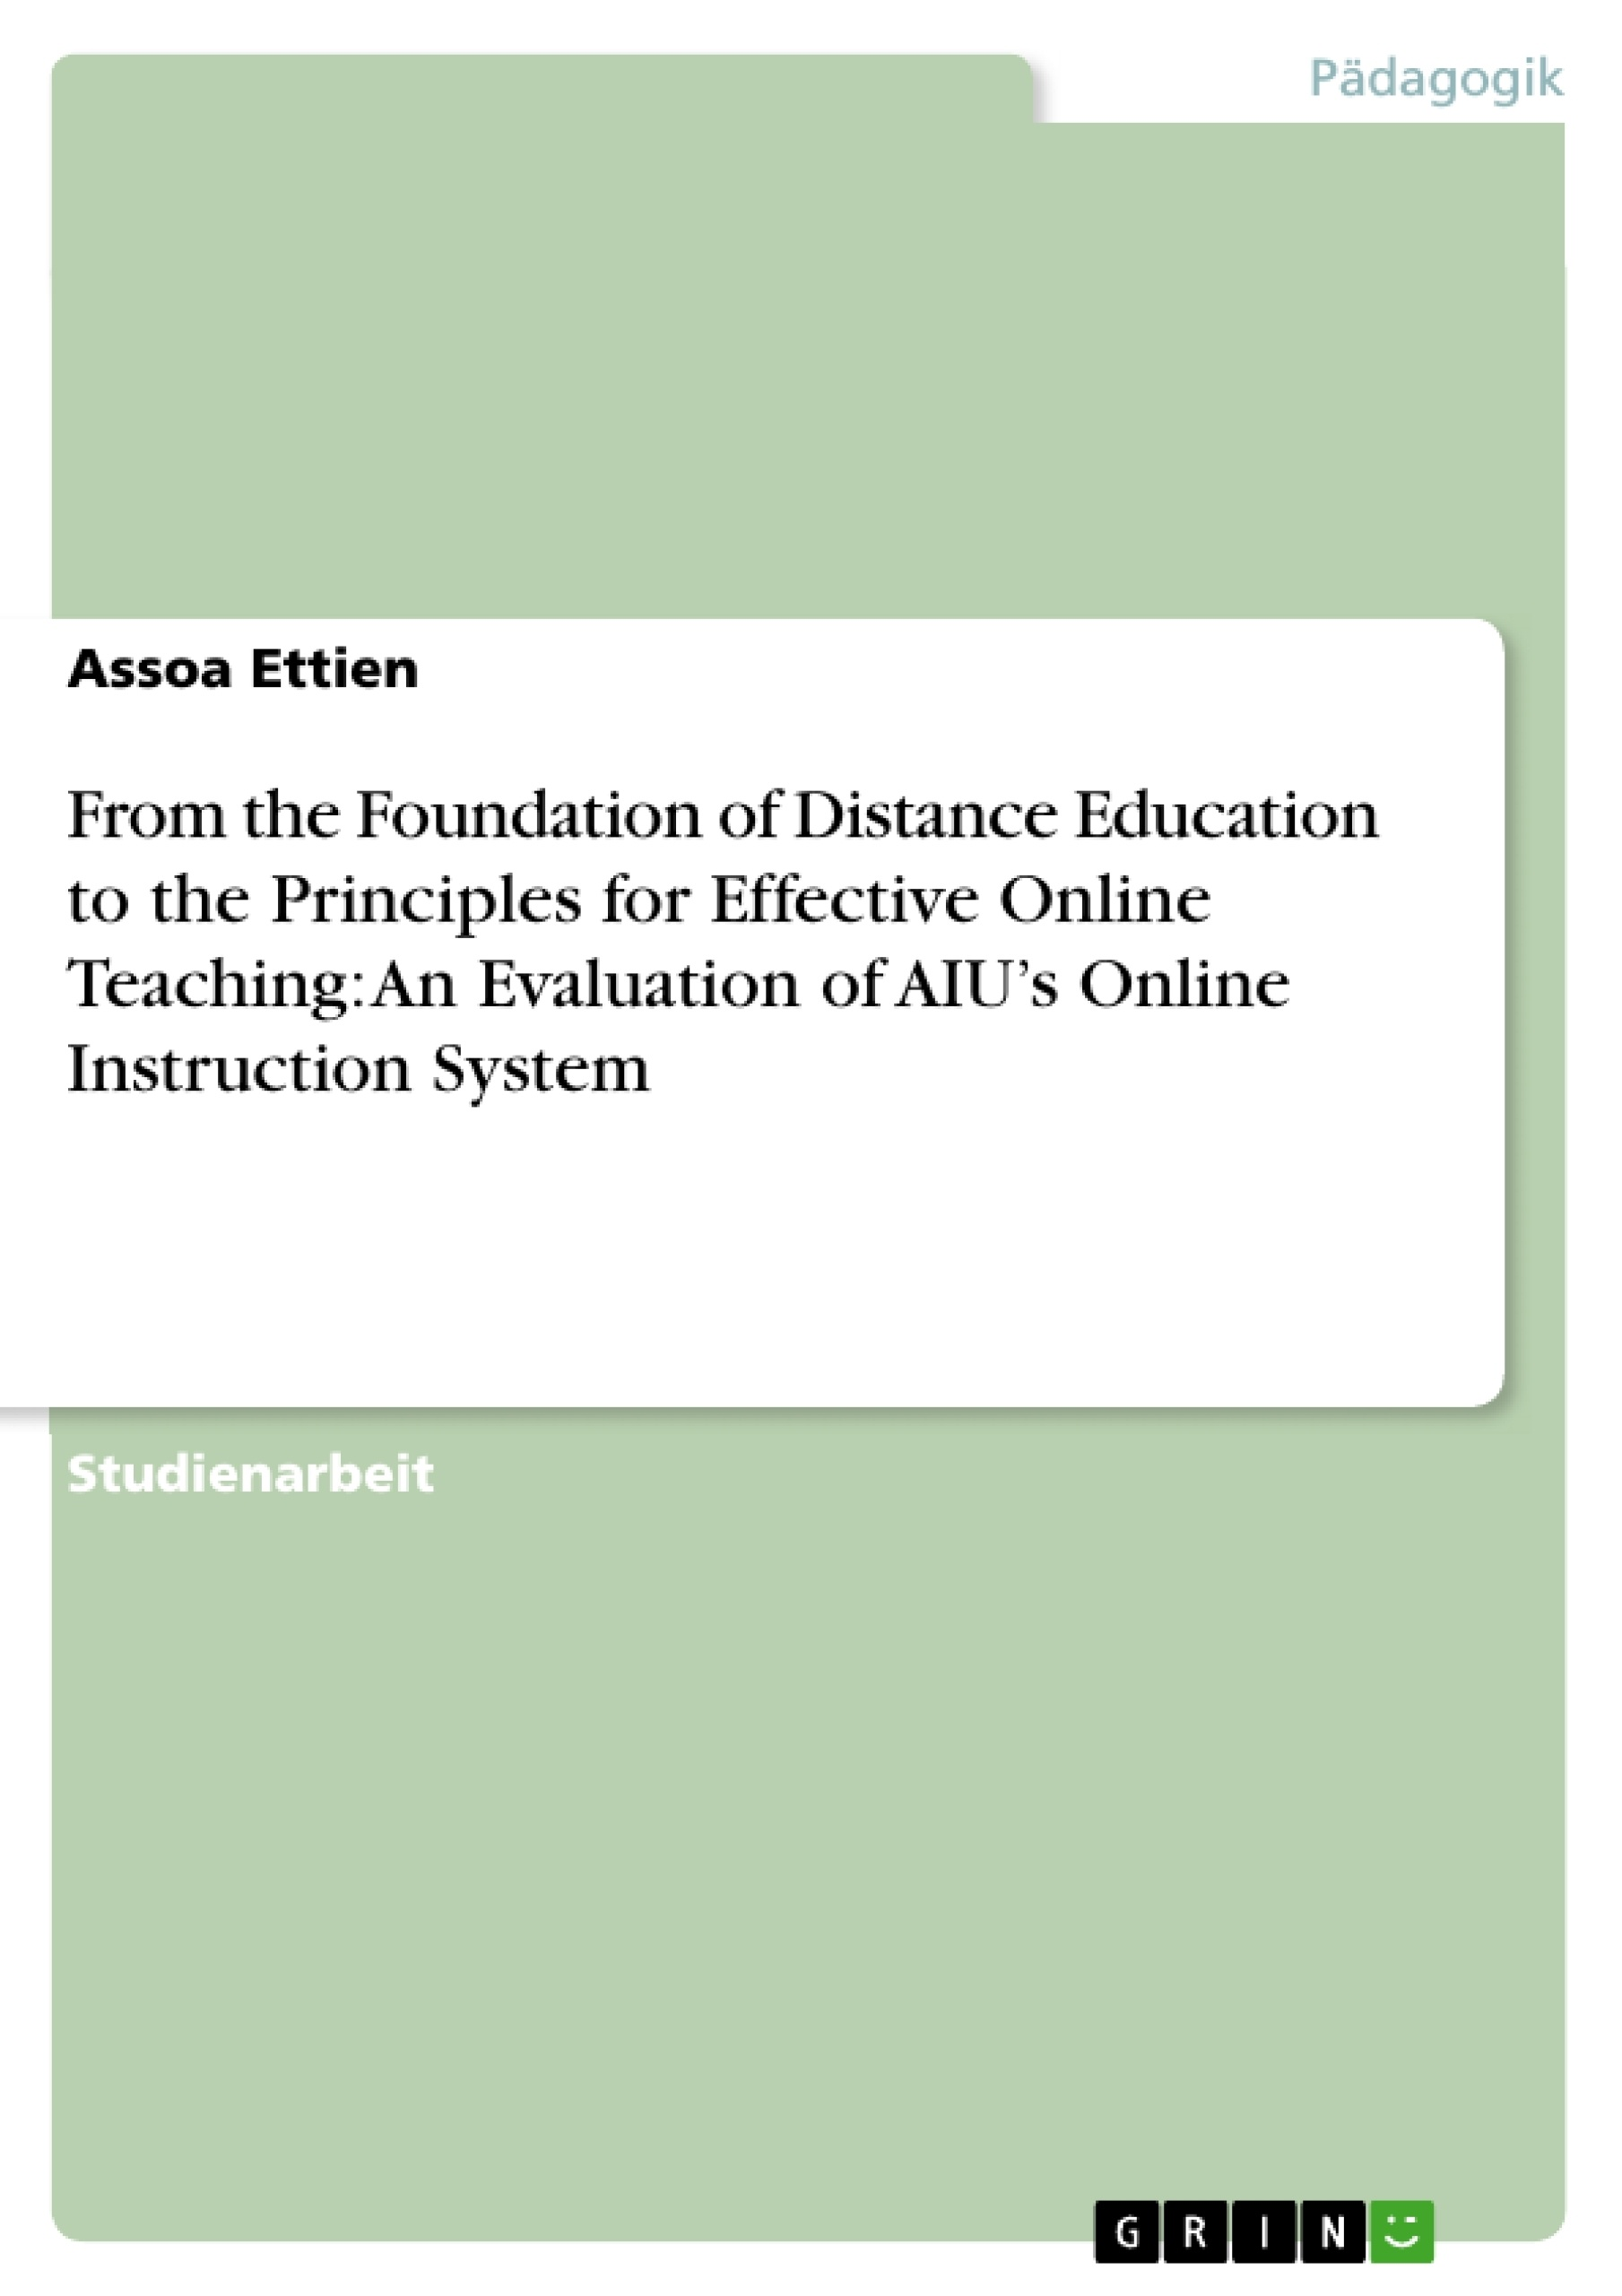 Titel: From the Foundation of Distance Education to the Principles for Effective Online Teaching: An Evaluation of AIU's Online Instruction System